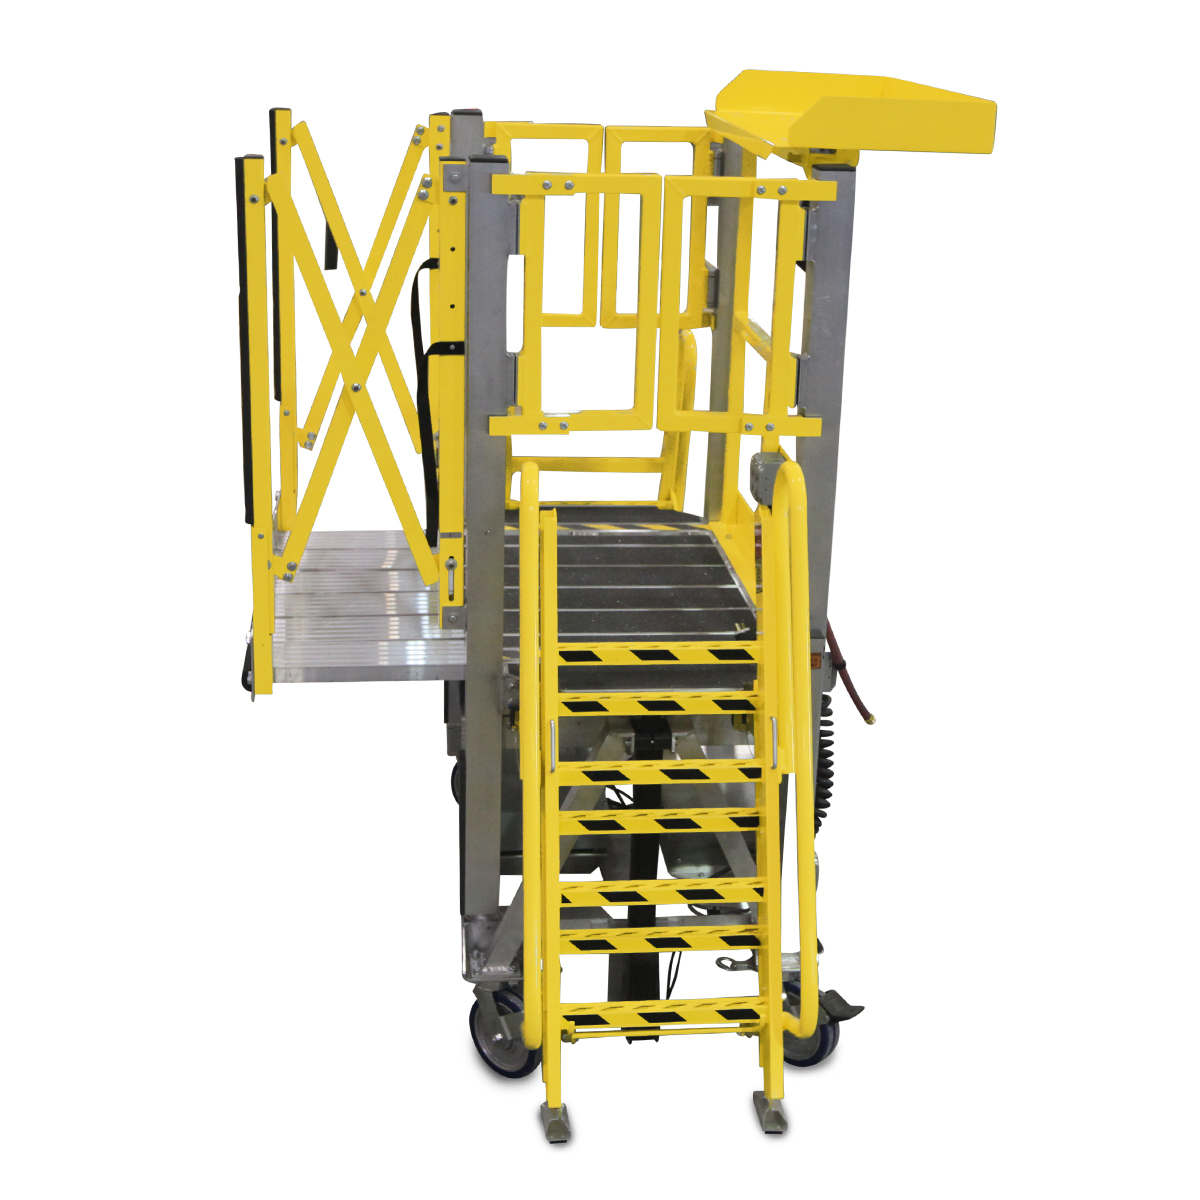 Customizable OSHA compliant portable aluminum work stand with height adjustable ladders, deck extensions for overreach and laptop tool trays for improved ergonomics.